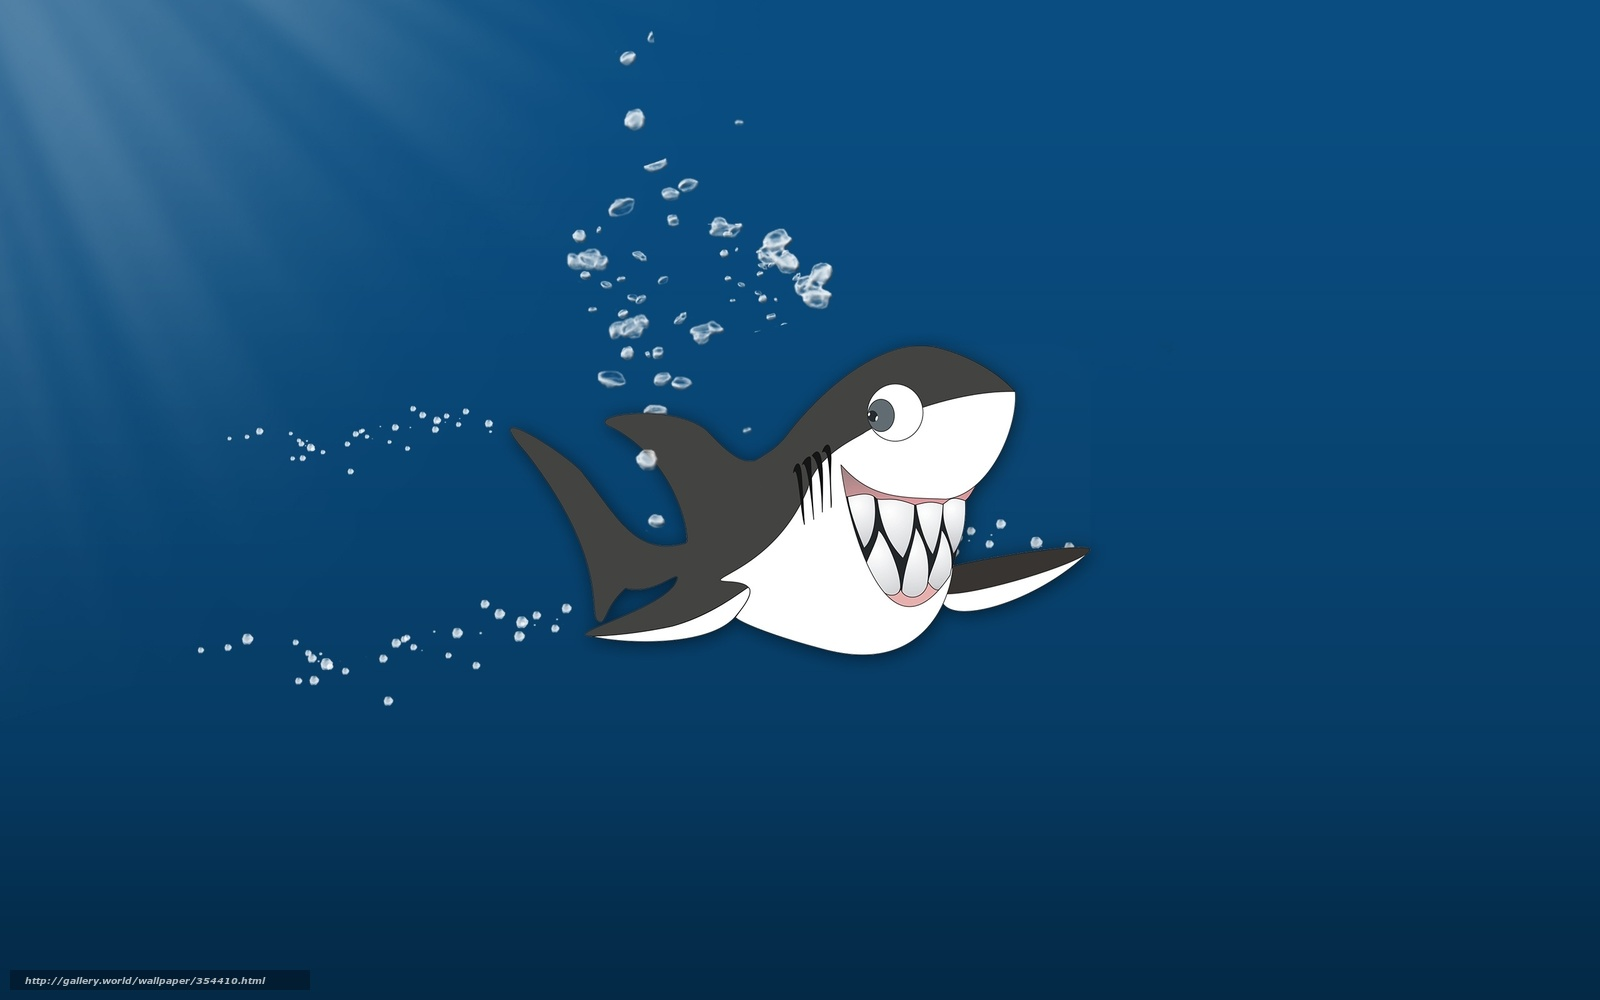 download wallpaper shark 1600 - photo #45